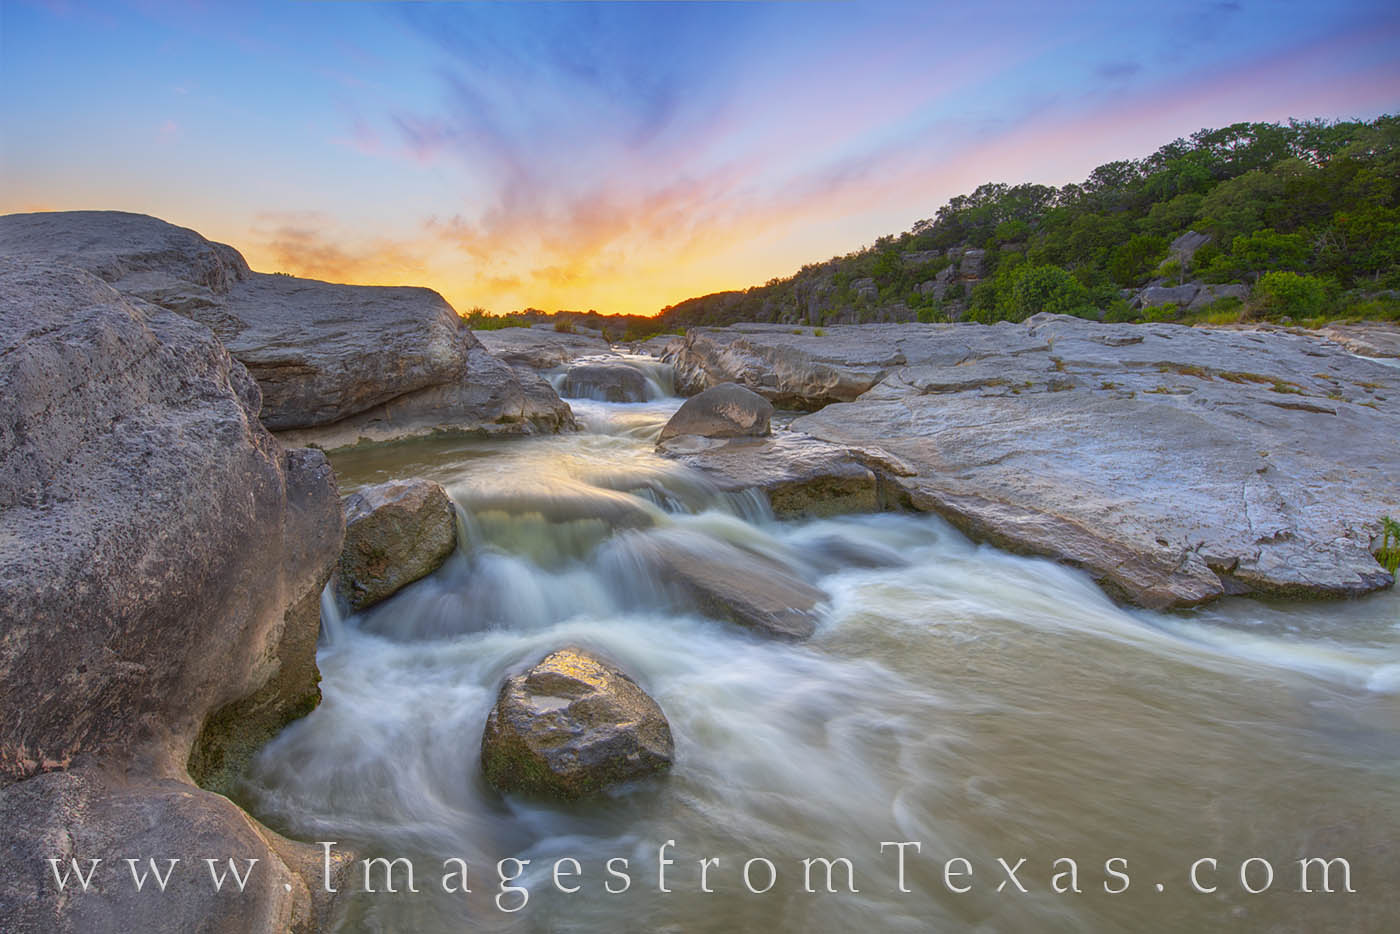 hill country, waterfall, cascade, summer, sunset, pedernales, texas state parks, hill country prints, photo